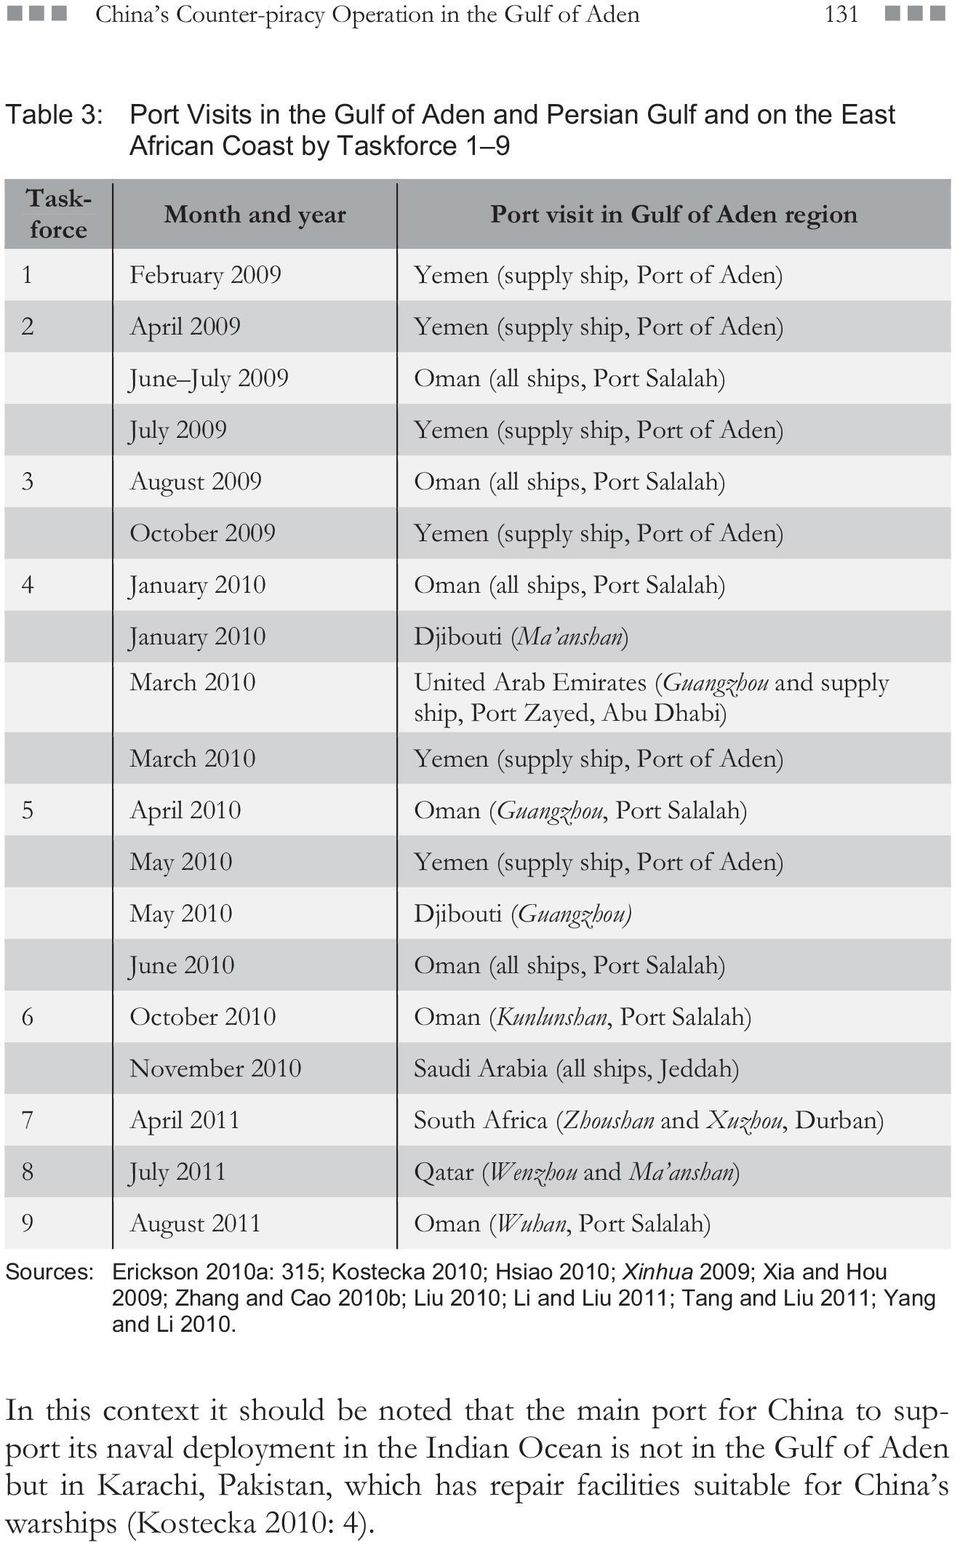 Port of Aden) 3 August 2009 Oman (all ships, Port Salalah) October 2009 Yemen (supply ship, Port of Aden) 4 January 2010 Oman (all ships, Port Salalah) January 2010 March 2010 March 2010 Djibouti (Ma